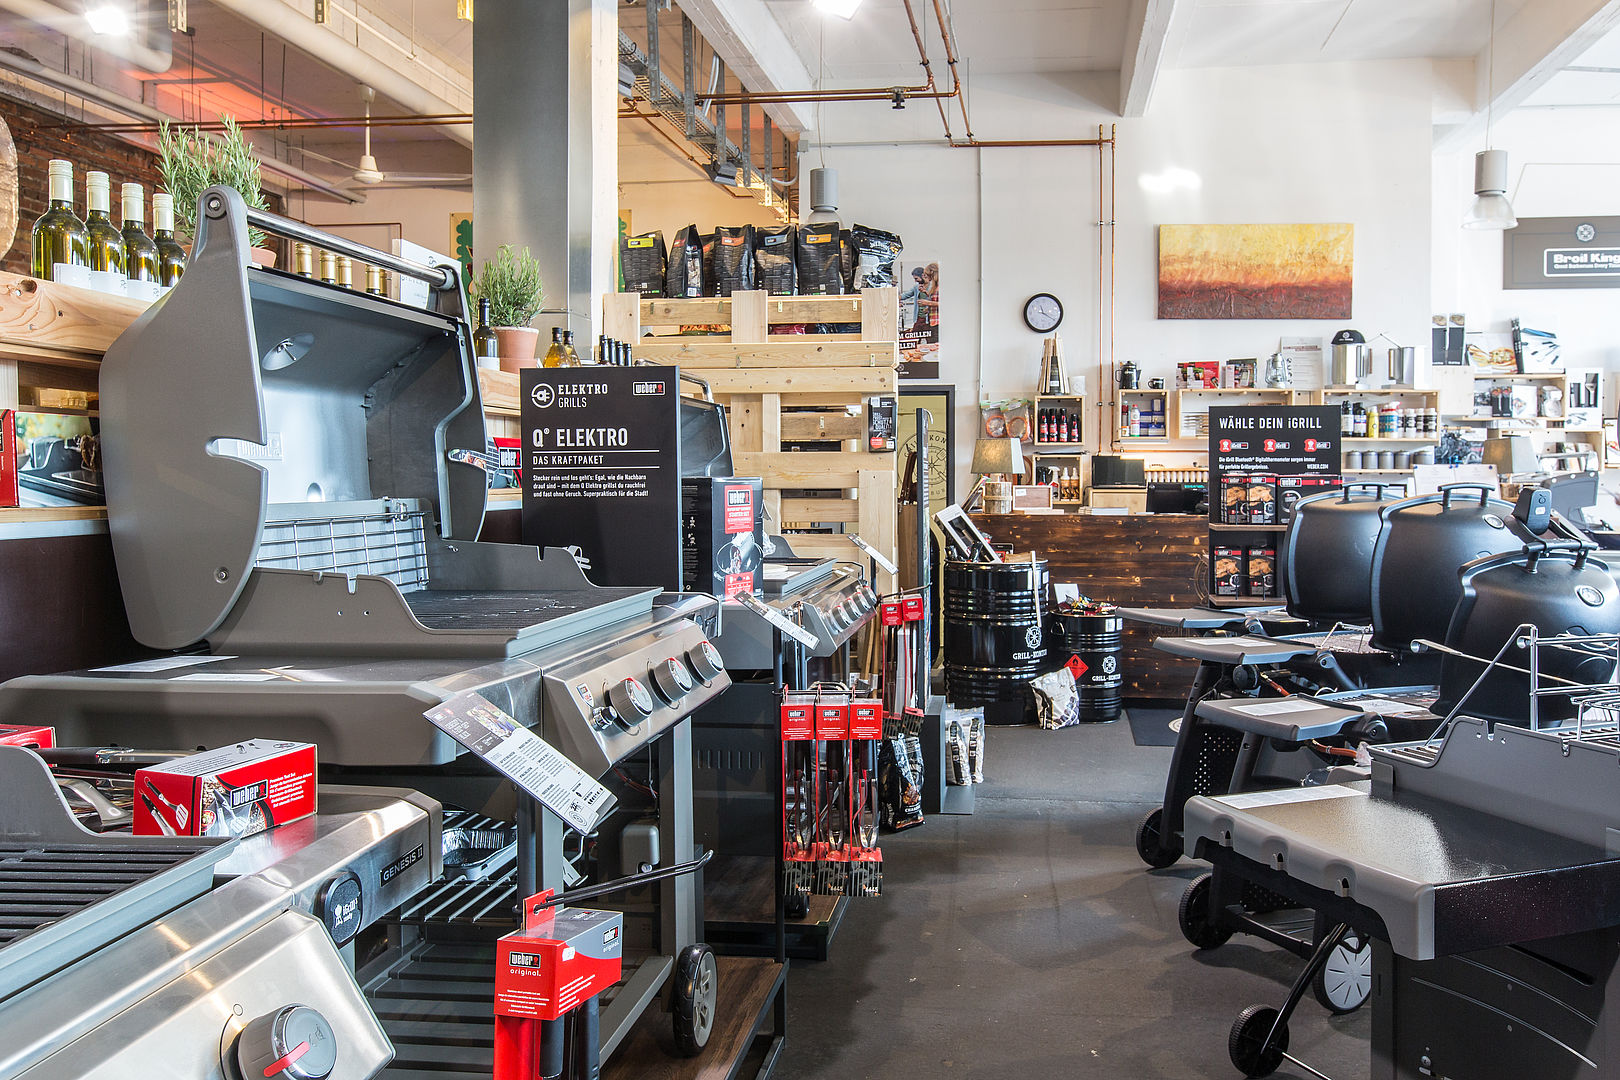 Grillkurs Augsburg Grill Kontor Hamburg Up To 50 Persons Fiylo